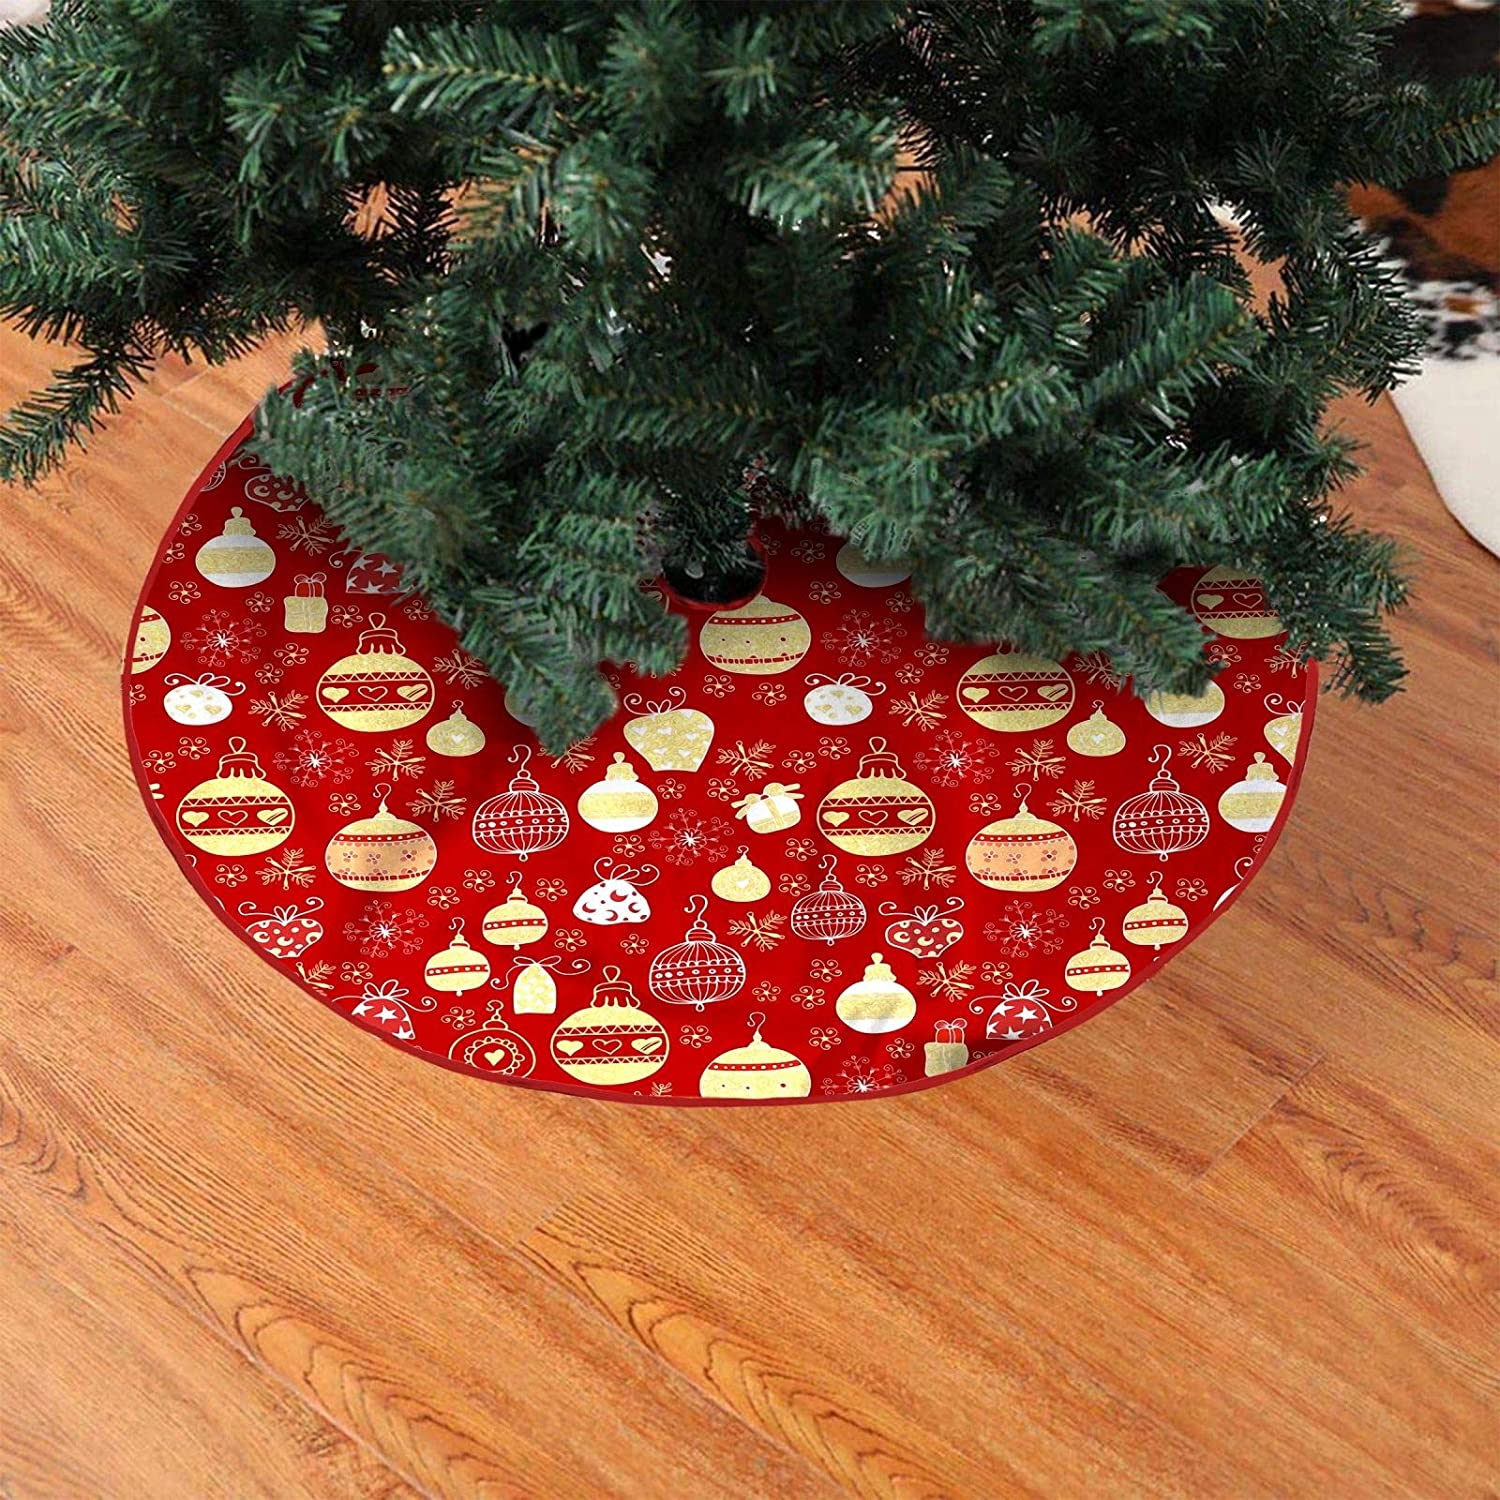 Somik Christmas Tree Skirt 48-inch Holiday Decorations Simple and Delicate Decoration